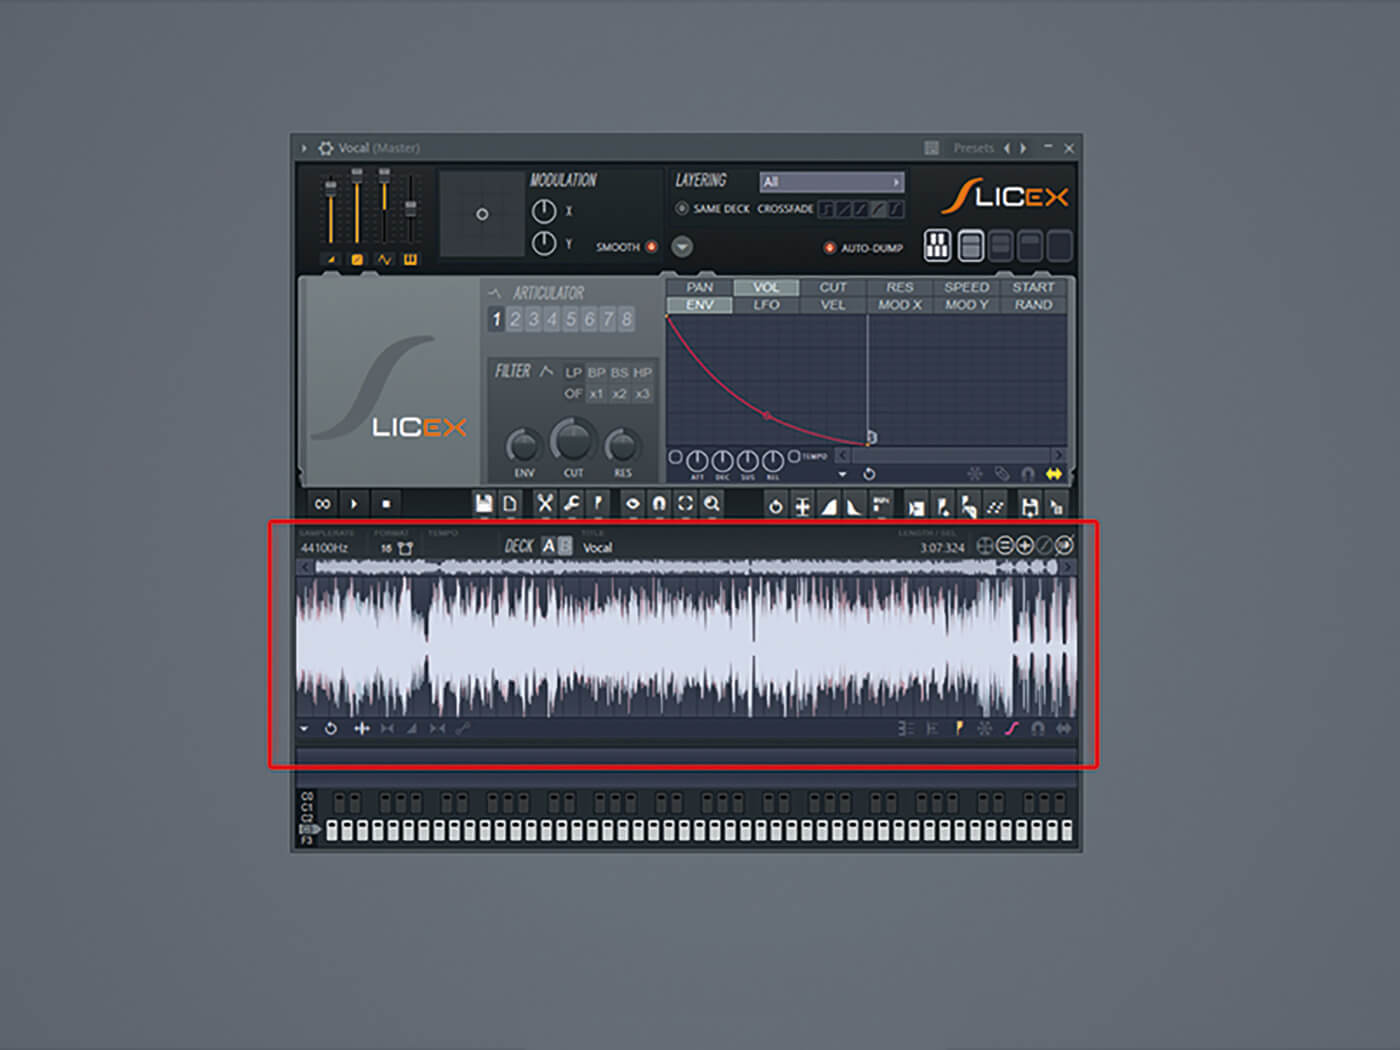 MT 207 FL Studio TUT Step 1